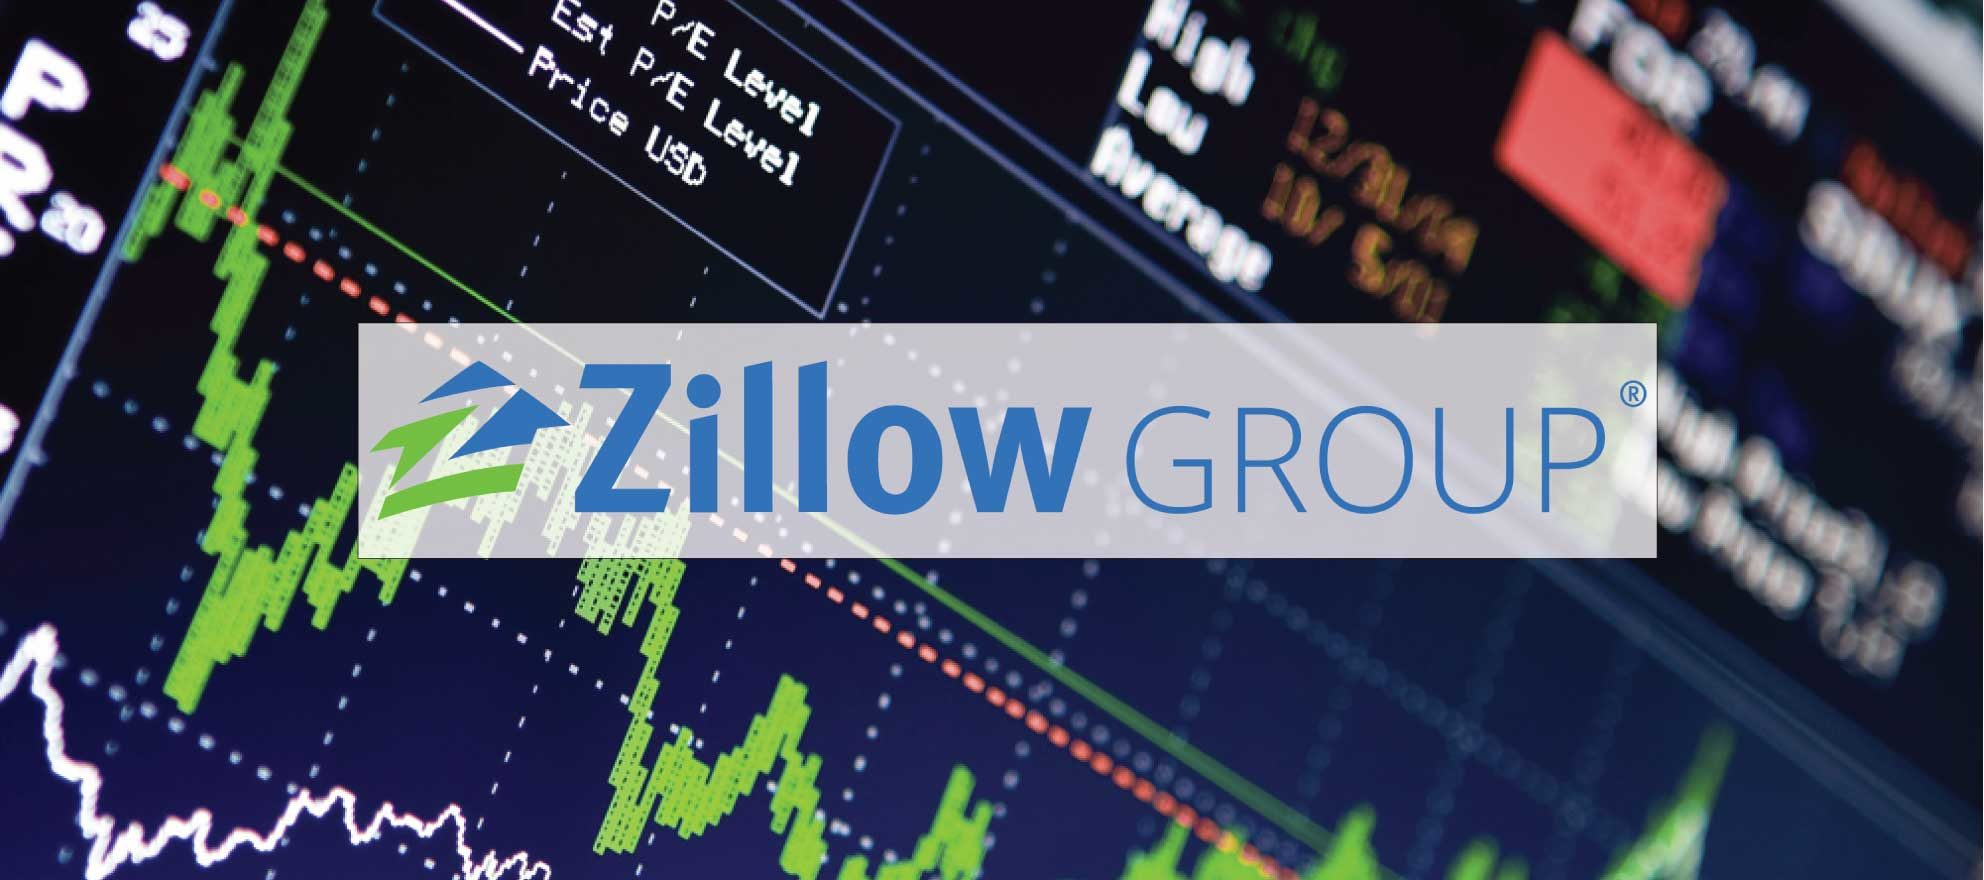 Zillow Group claims 5 percent 'wallet share' of agent advertising